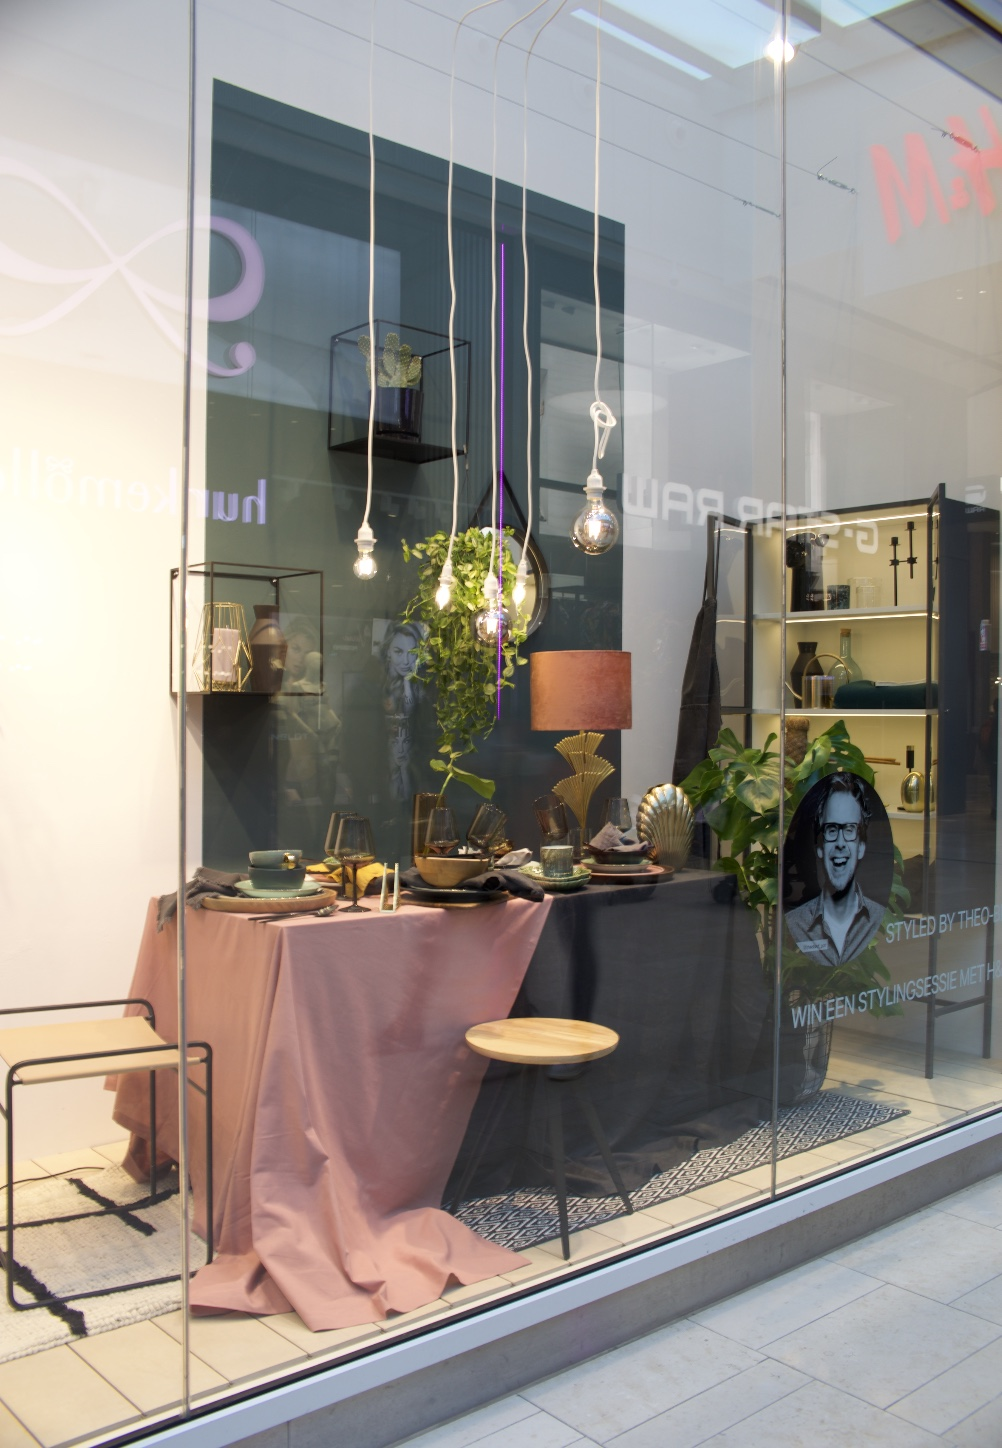 interieur styling hm home collectie the nice stuff collector utrecht window blog theo-bert pot 5.jpg